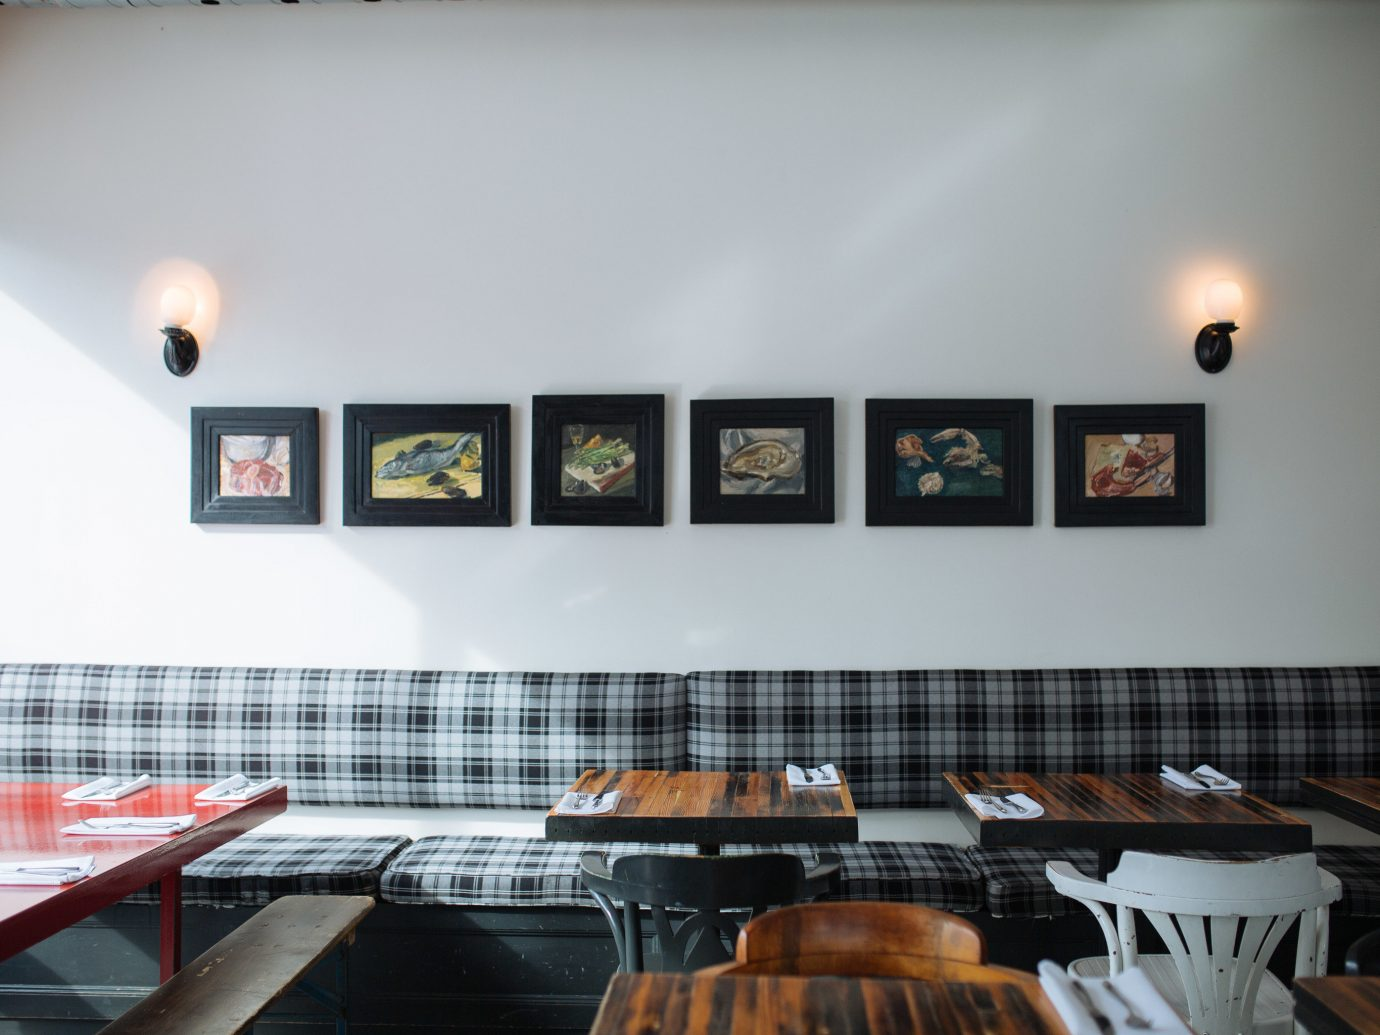 Food + Drink wall table indoor room restaurant interior design Design ceiling window covering decorated several